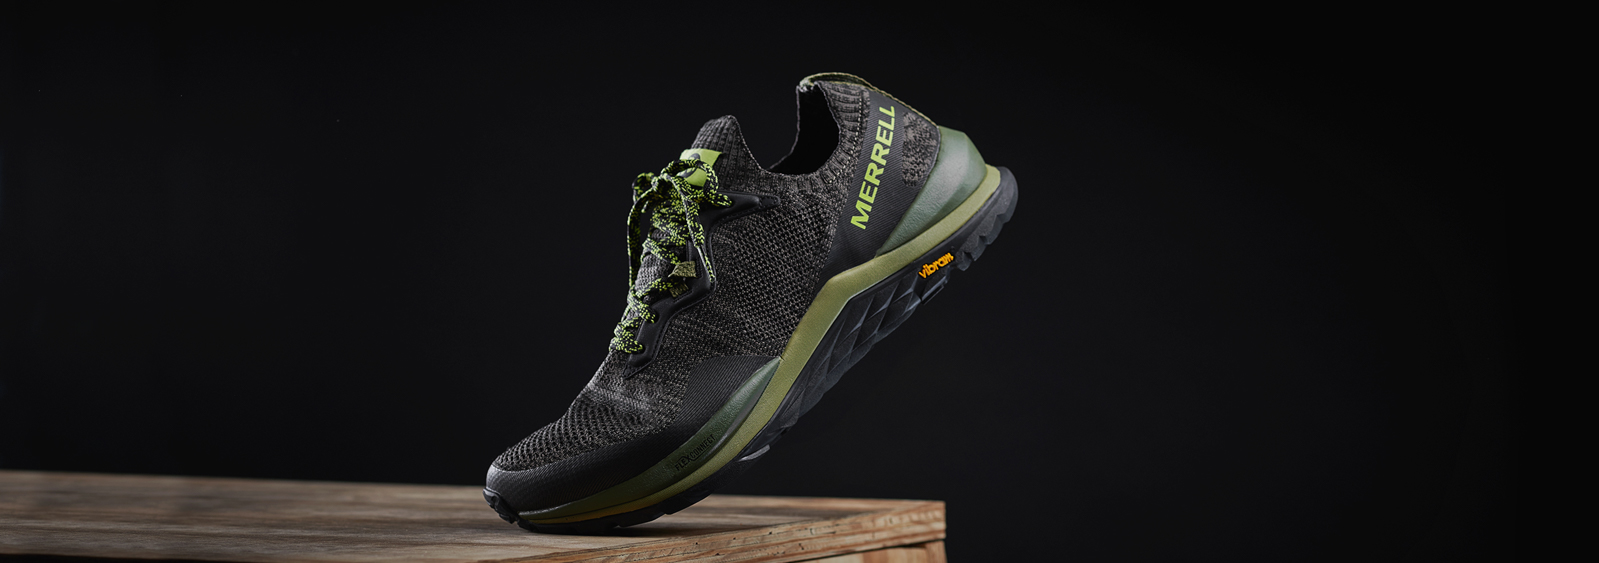 Mag 9 Training Shoe